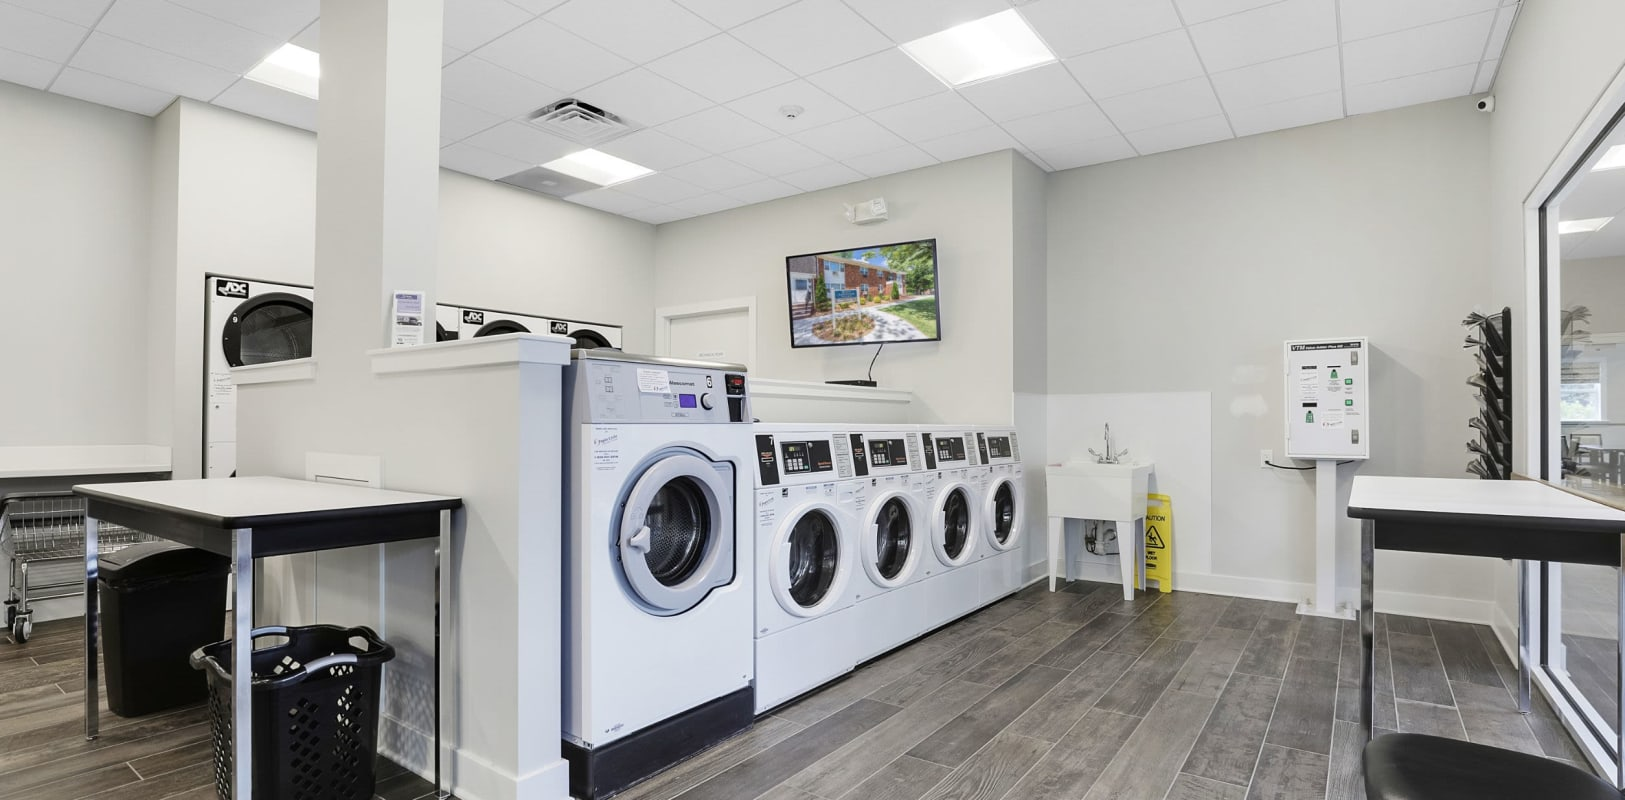 Onsite laundry facility at Nieuw Amsterdam Village in South Amboy, New Jersey